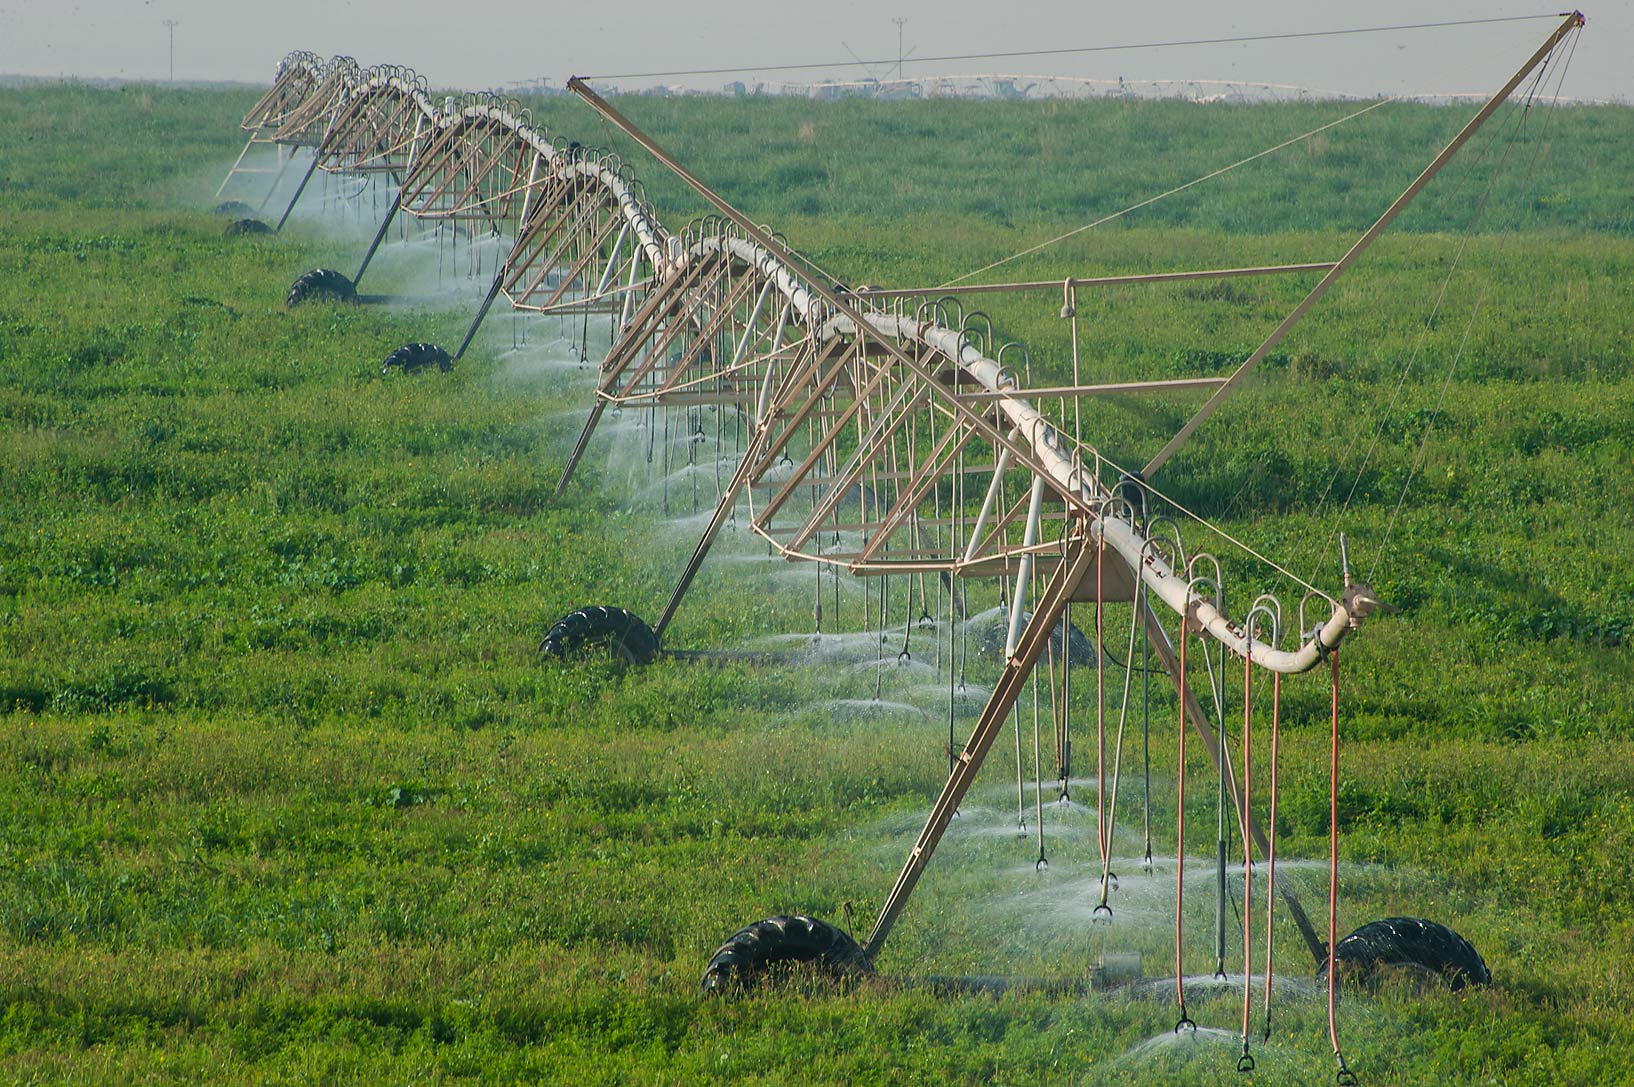 Segments of pipes with water sprinkles on Green...Irkaya) Farms. South-western Qatar